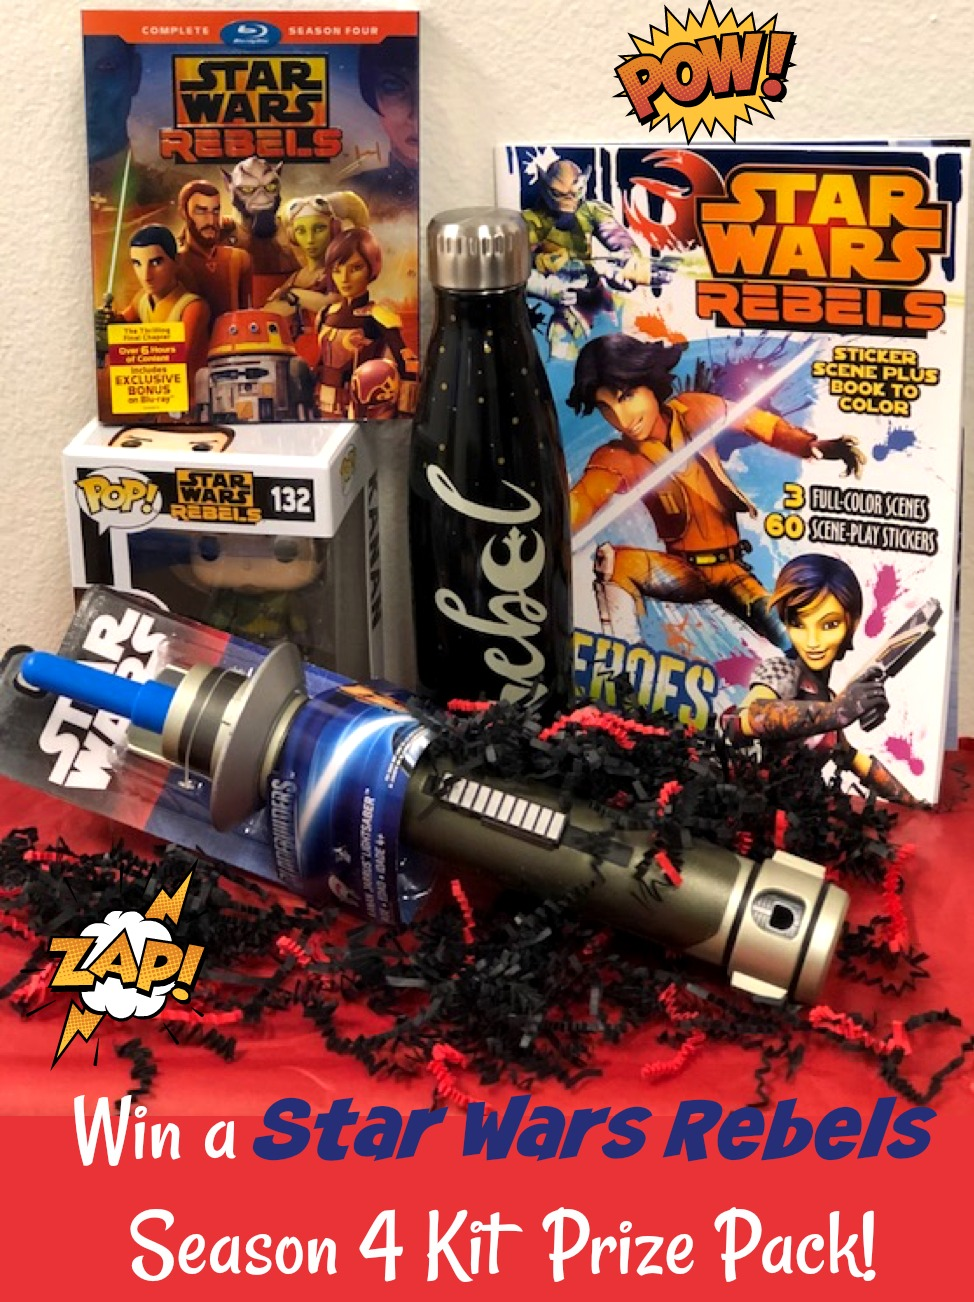 Star Wars Rebels Season 4 Kit Giveaway